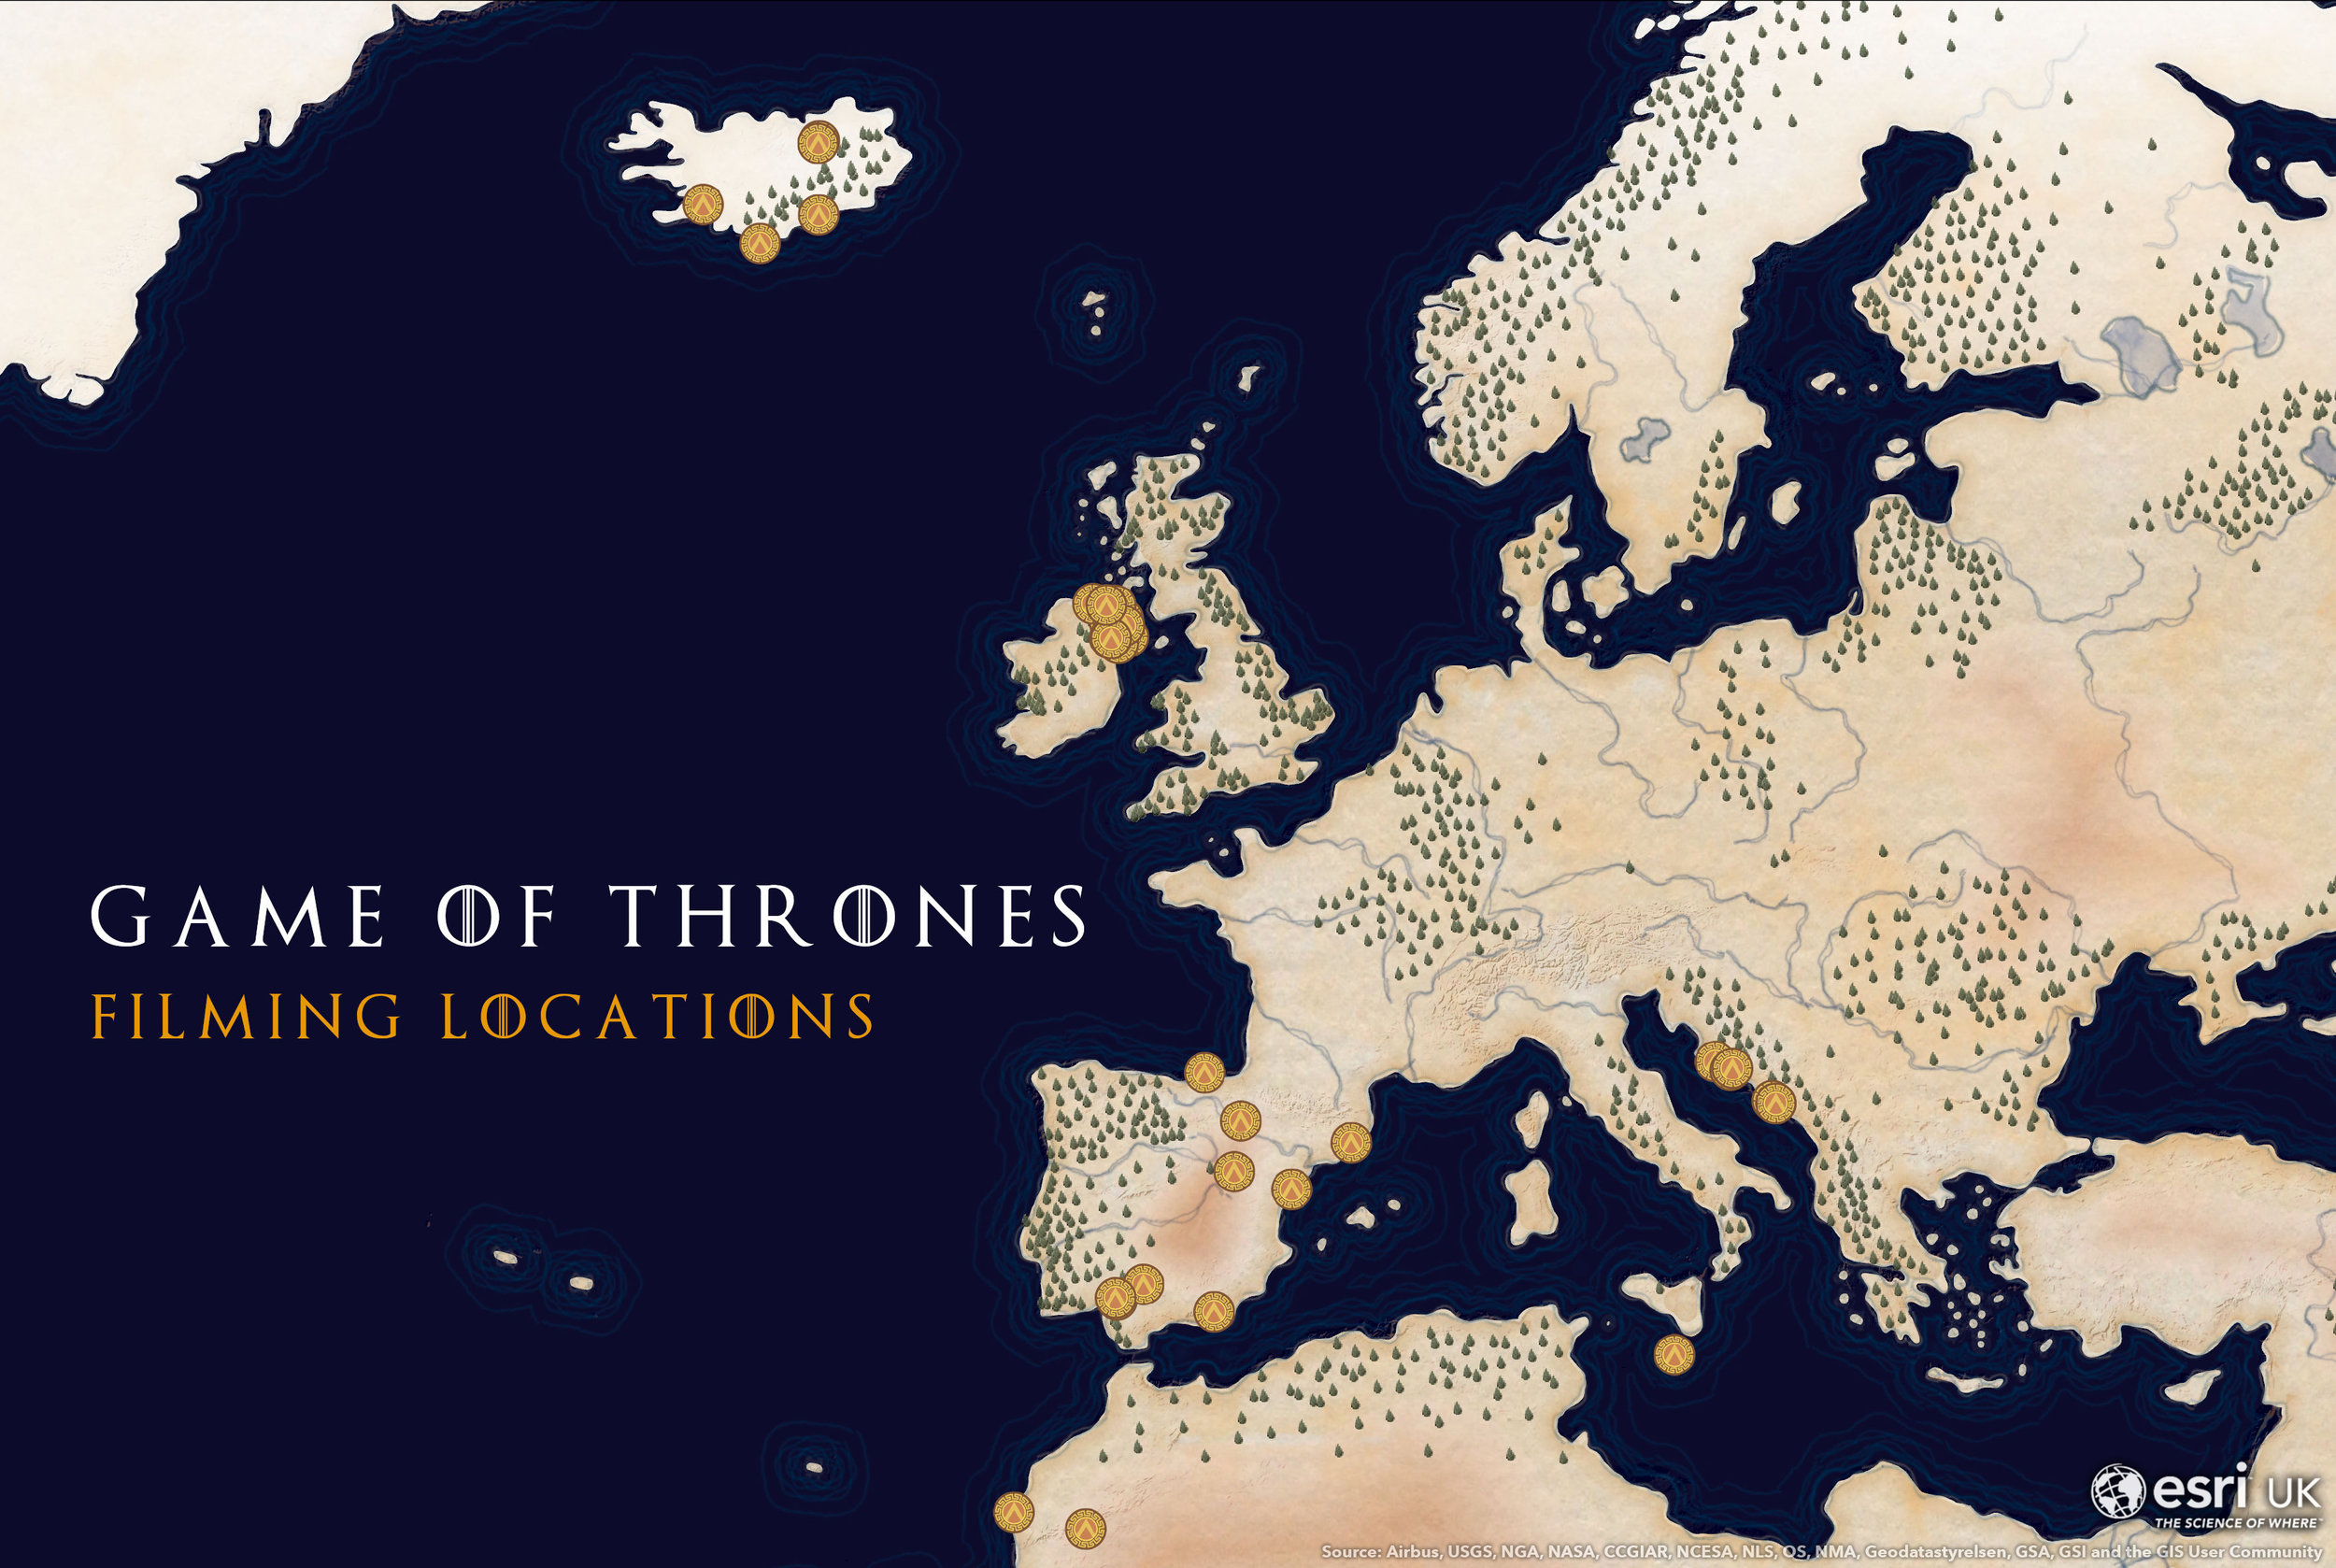 On the Map: Game of Thrones filming locations — CommunityHub Game Pf Thrones Map on walking dead map, winterfell map, a game of thrones, fire and blood, justified map, a clash of kings, narnia map, a storm of swords, gendry map, themes in a song of ice and fire, got map, jericho map, the prince of winterfell, downton abbey map, lord snow, the kingsroad, works based on a song of ice and fire, dallas map, a game of thrones: genesis, clash of kings map, sons of anarchy, camelot map, qarth map, world map, bloodline map, a storm of swords map, tales of dunk and egg, game of thrones - season 2, a golden crown, star trek map, spooksville map, guild wars 2 map, game of thrones - season 1, a game of thrones collectible card game, jersey shore map, the pointy end, valyria map, winter is coming,